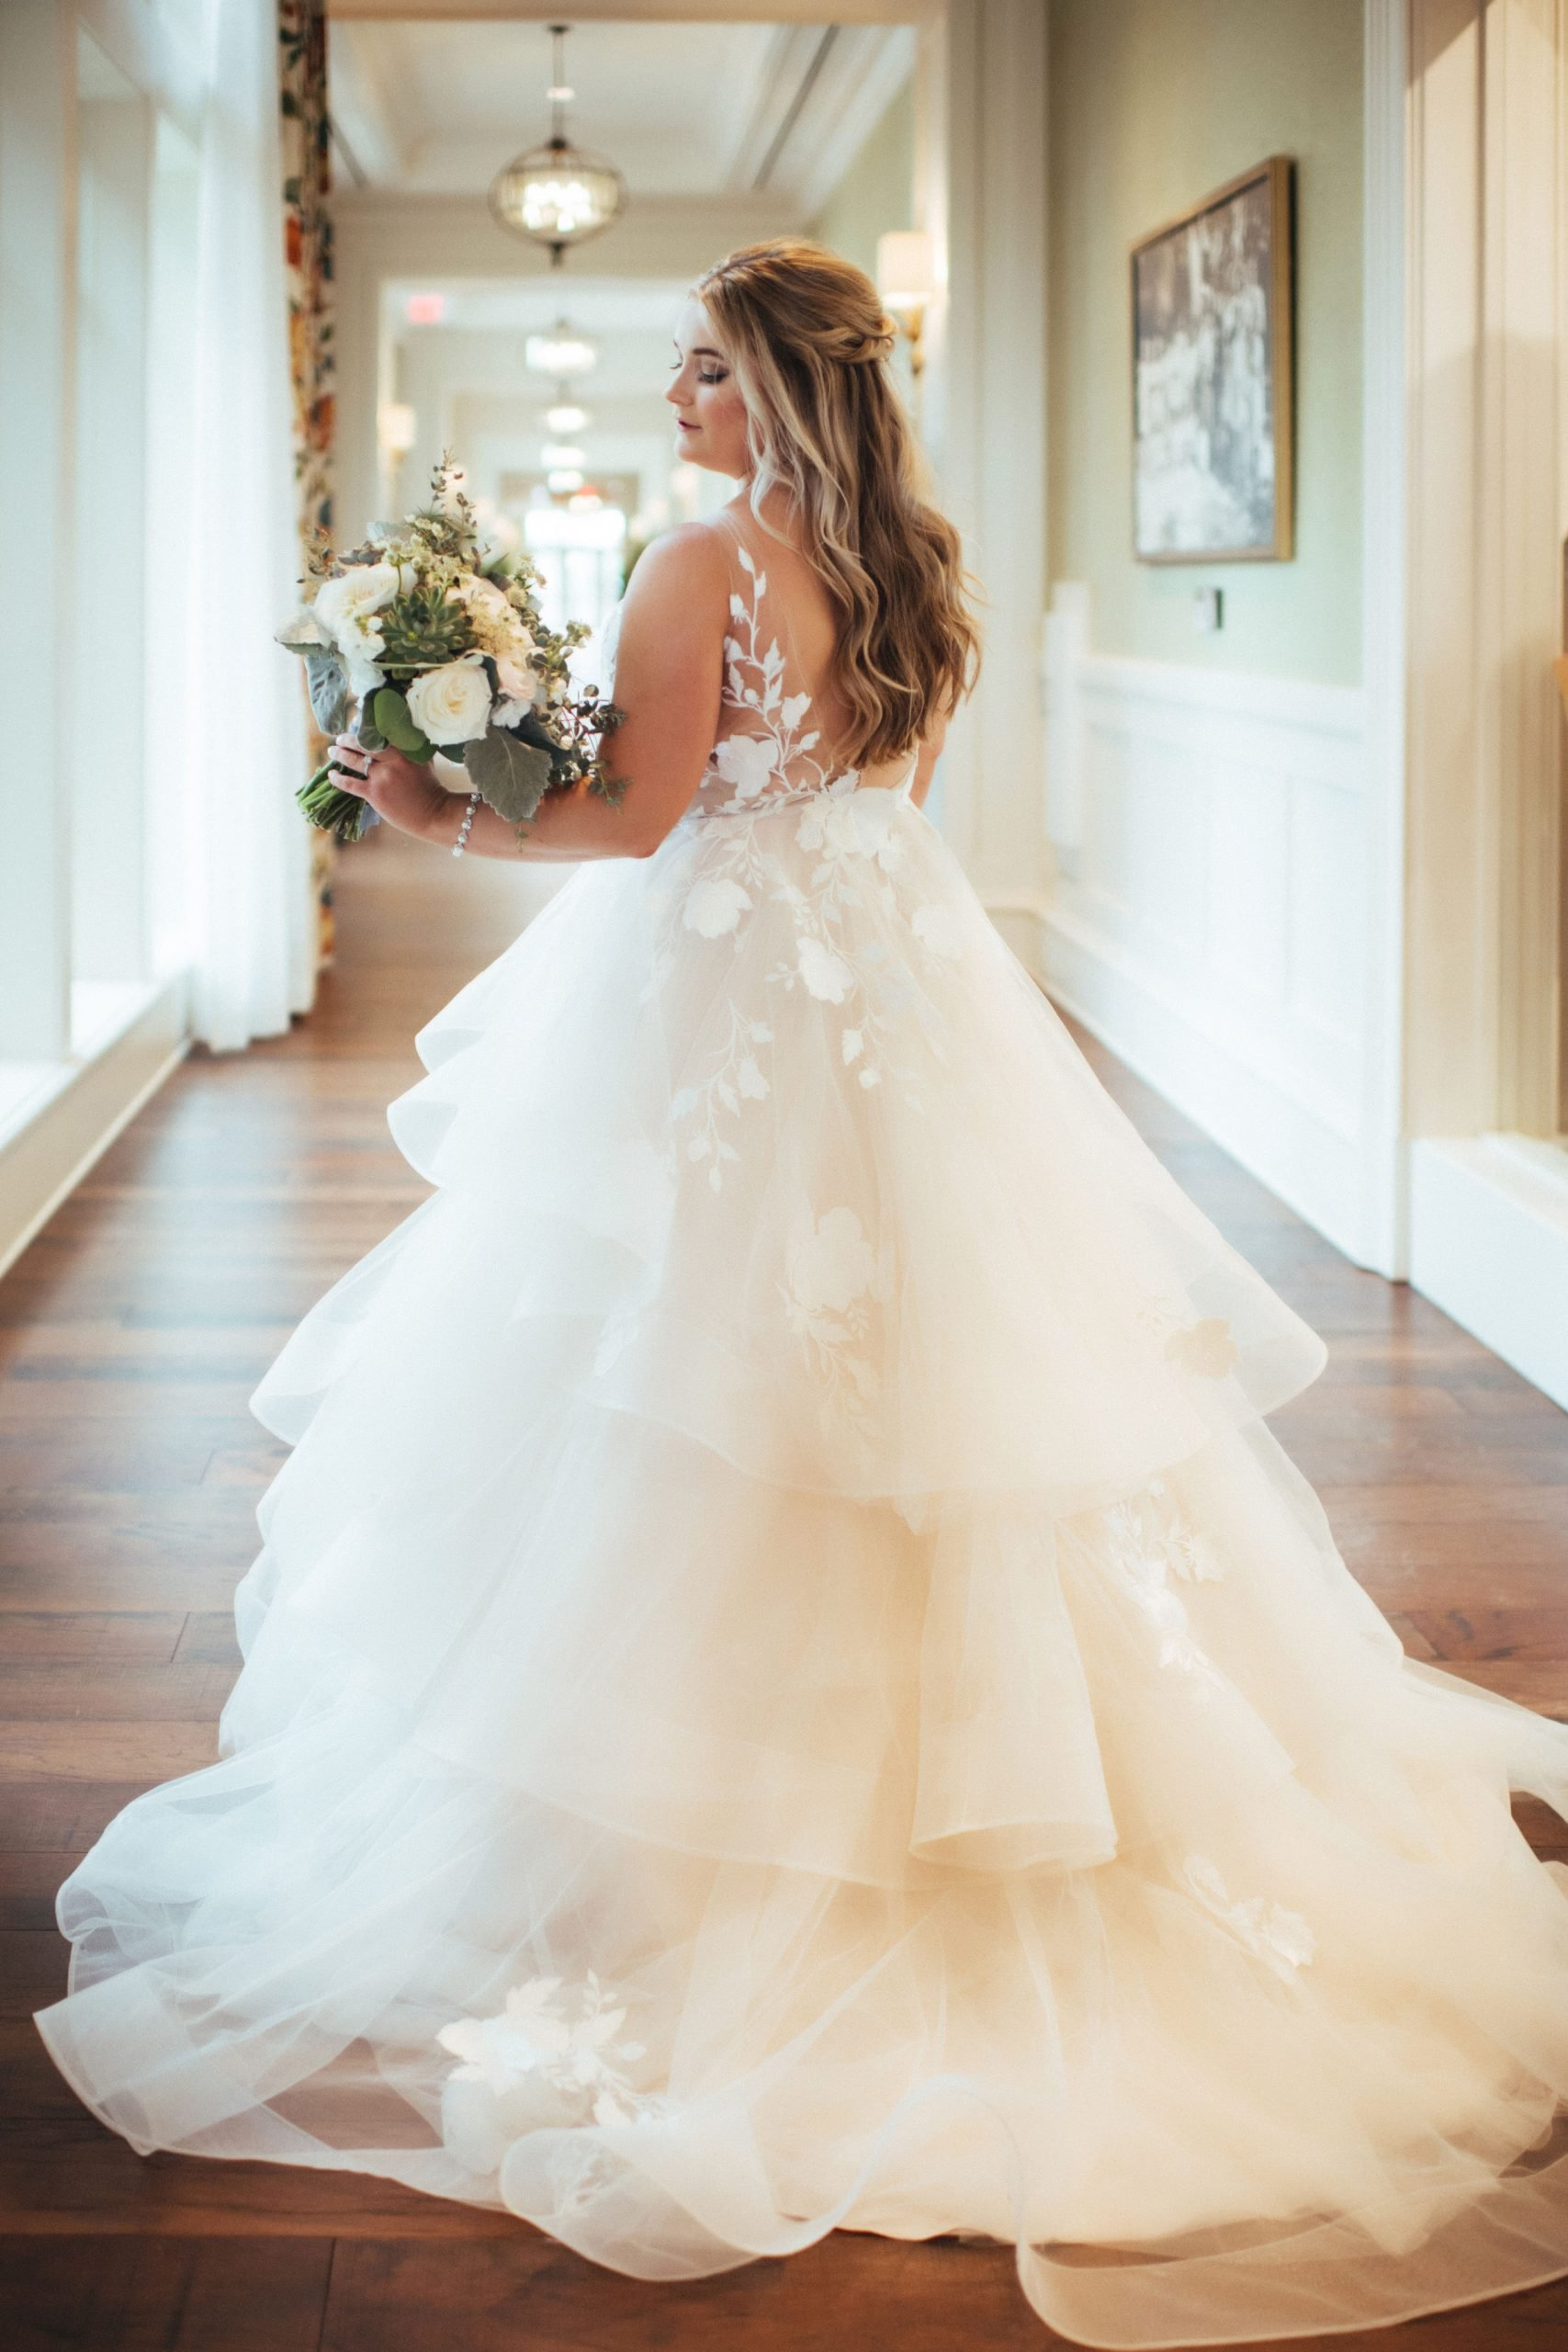 Ballgown tiered skirt with horsehair trim and lace appliques from Sophia's Bridal